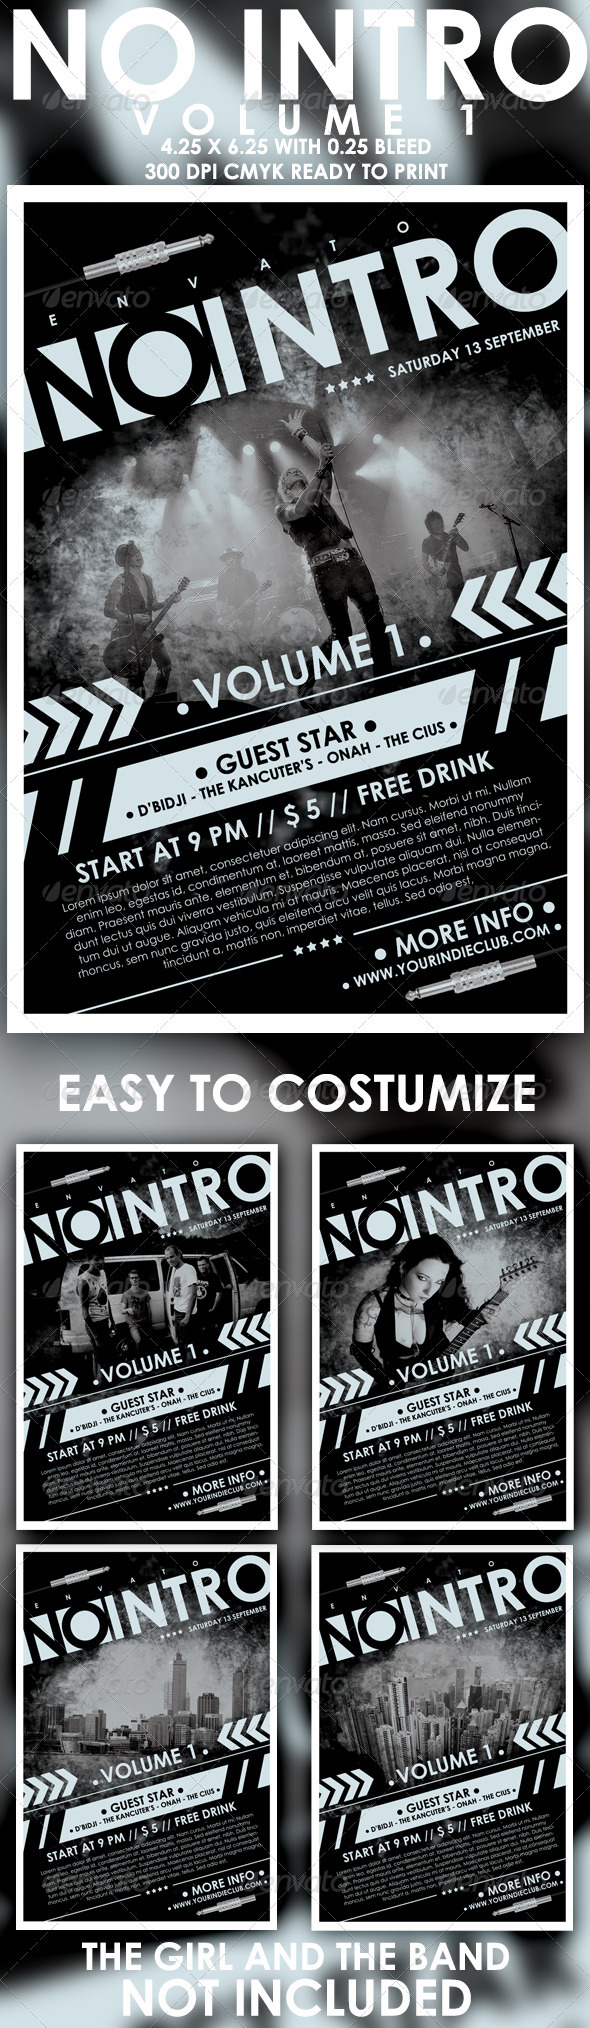 No Intro Vol 1 Flyer Template - Concerts Events